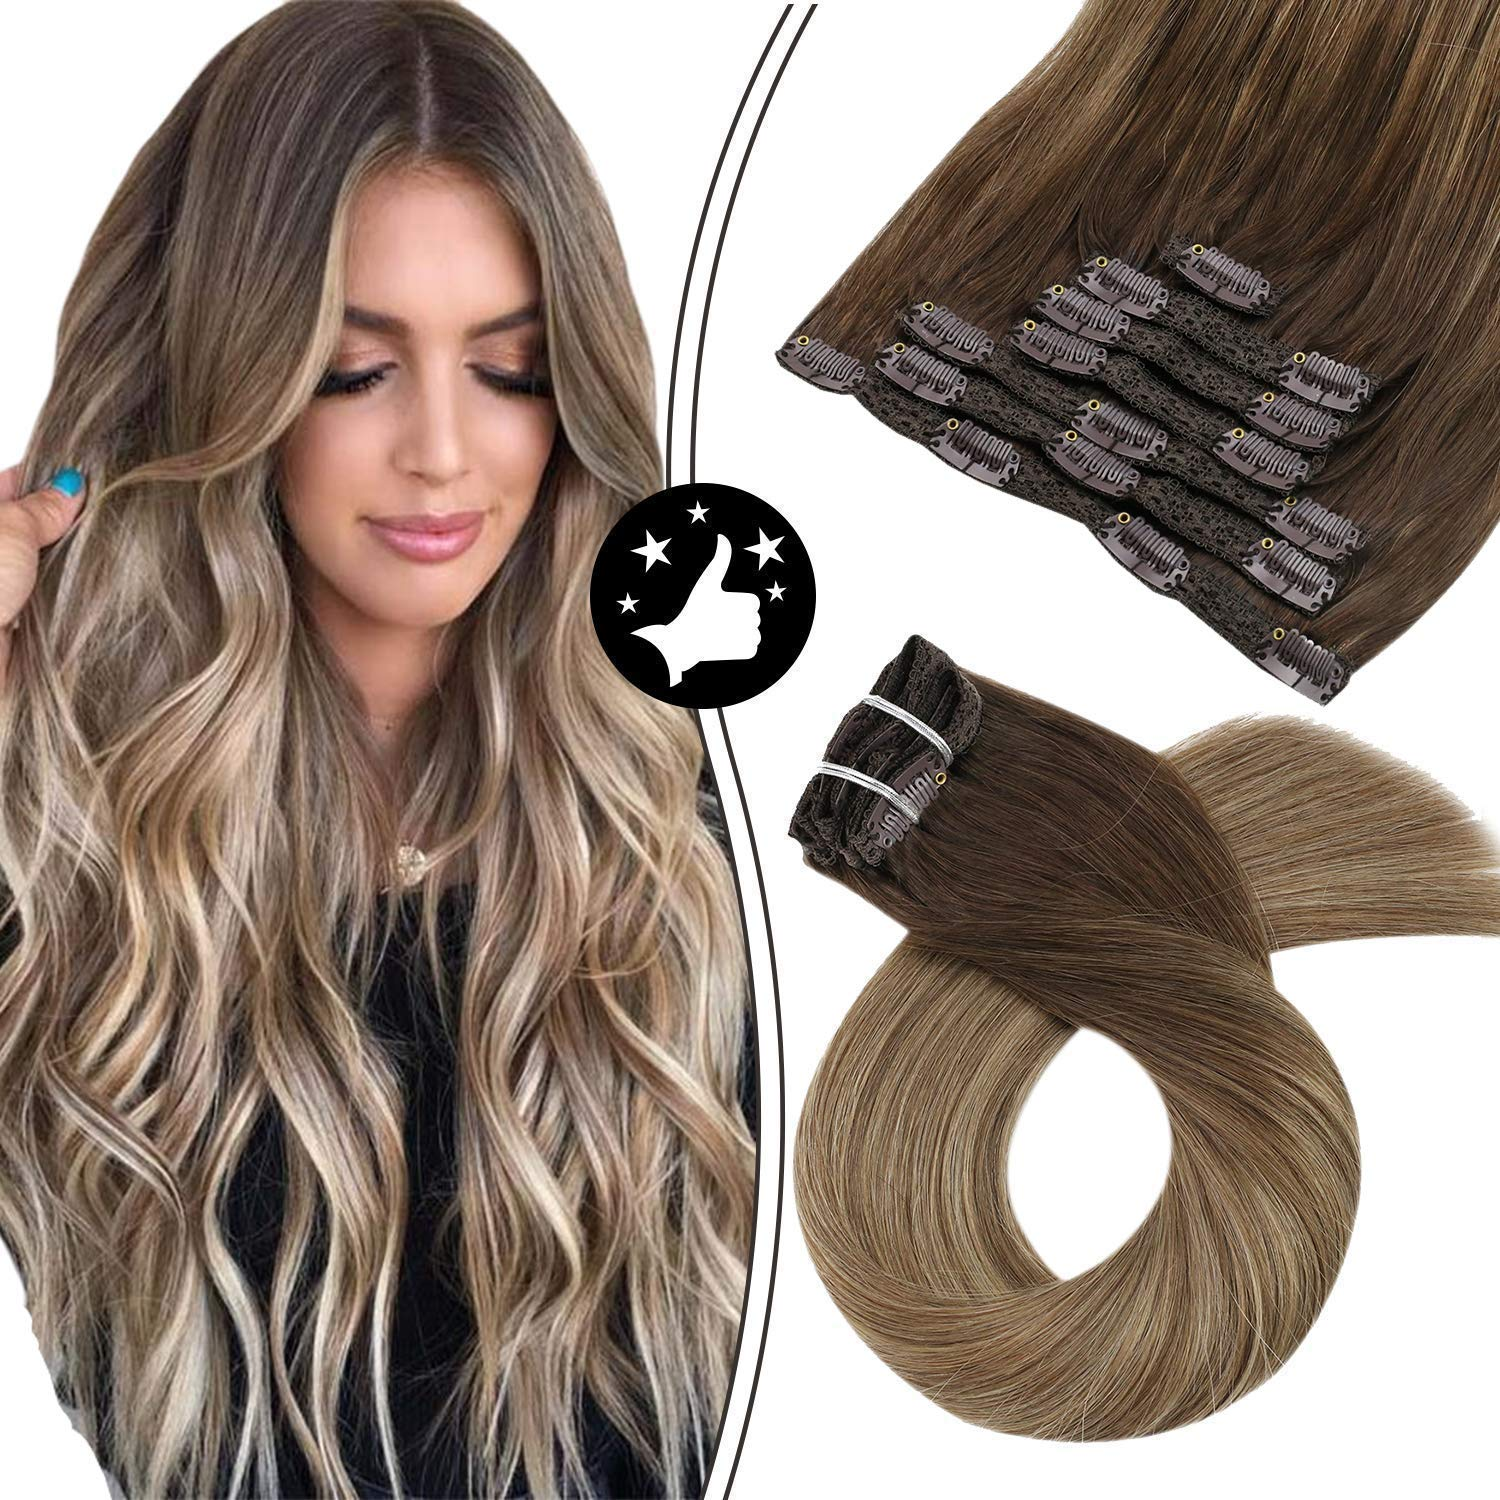 Moresoo 24 Inch Clip Japan Maker New Selling in Hair Extensions Weft Cl Remy Double